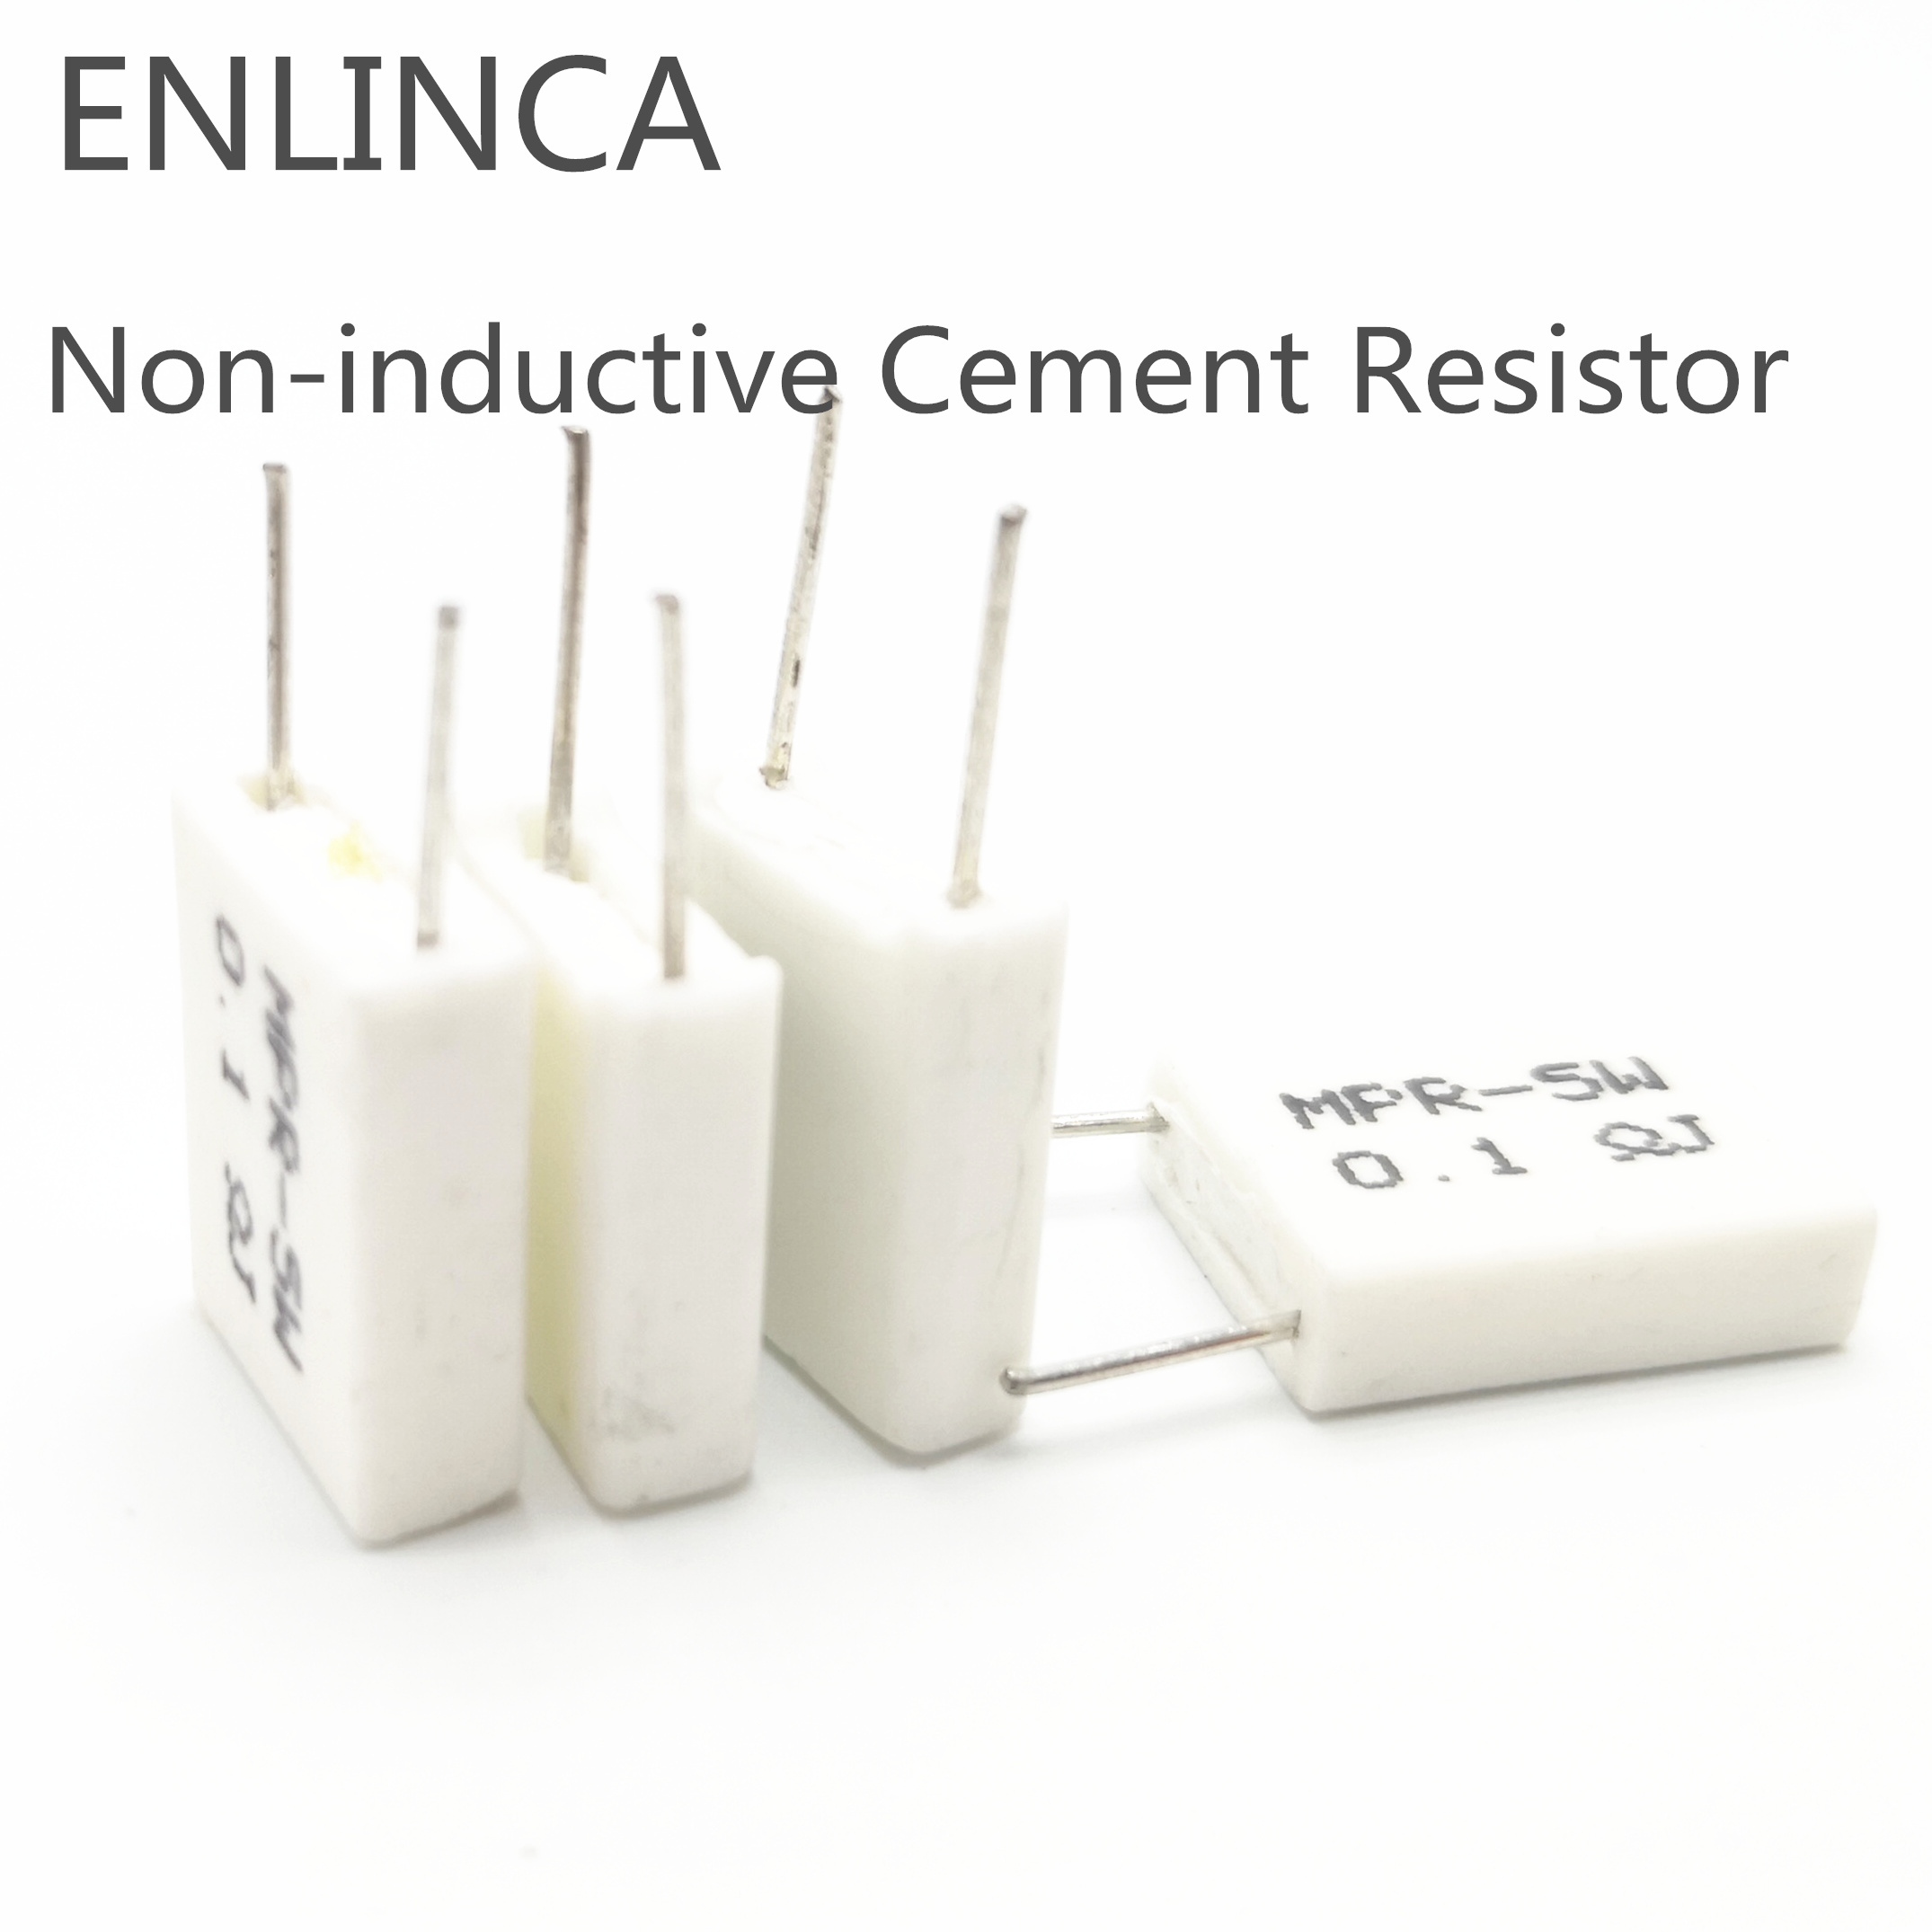 5pcs Tip142 To 247 To247 Complementary Silicon Power Darlington Pair Circuit 5w 01 015 022 025 033 05 Ohm Non Inductive Cement Resistor 5